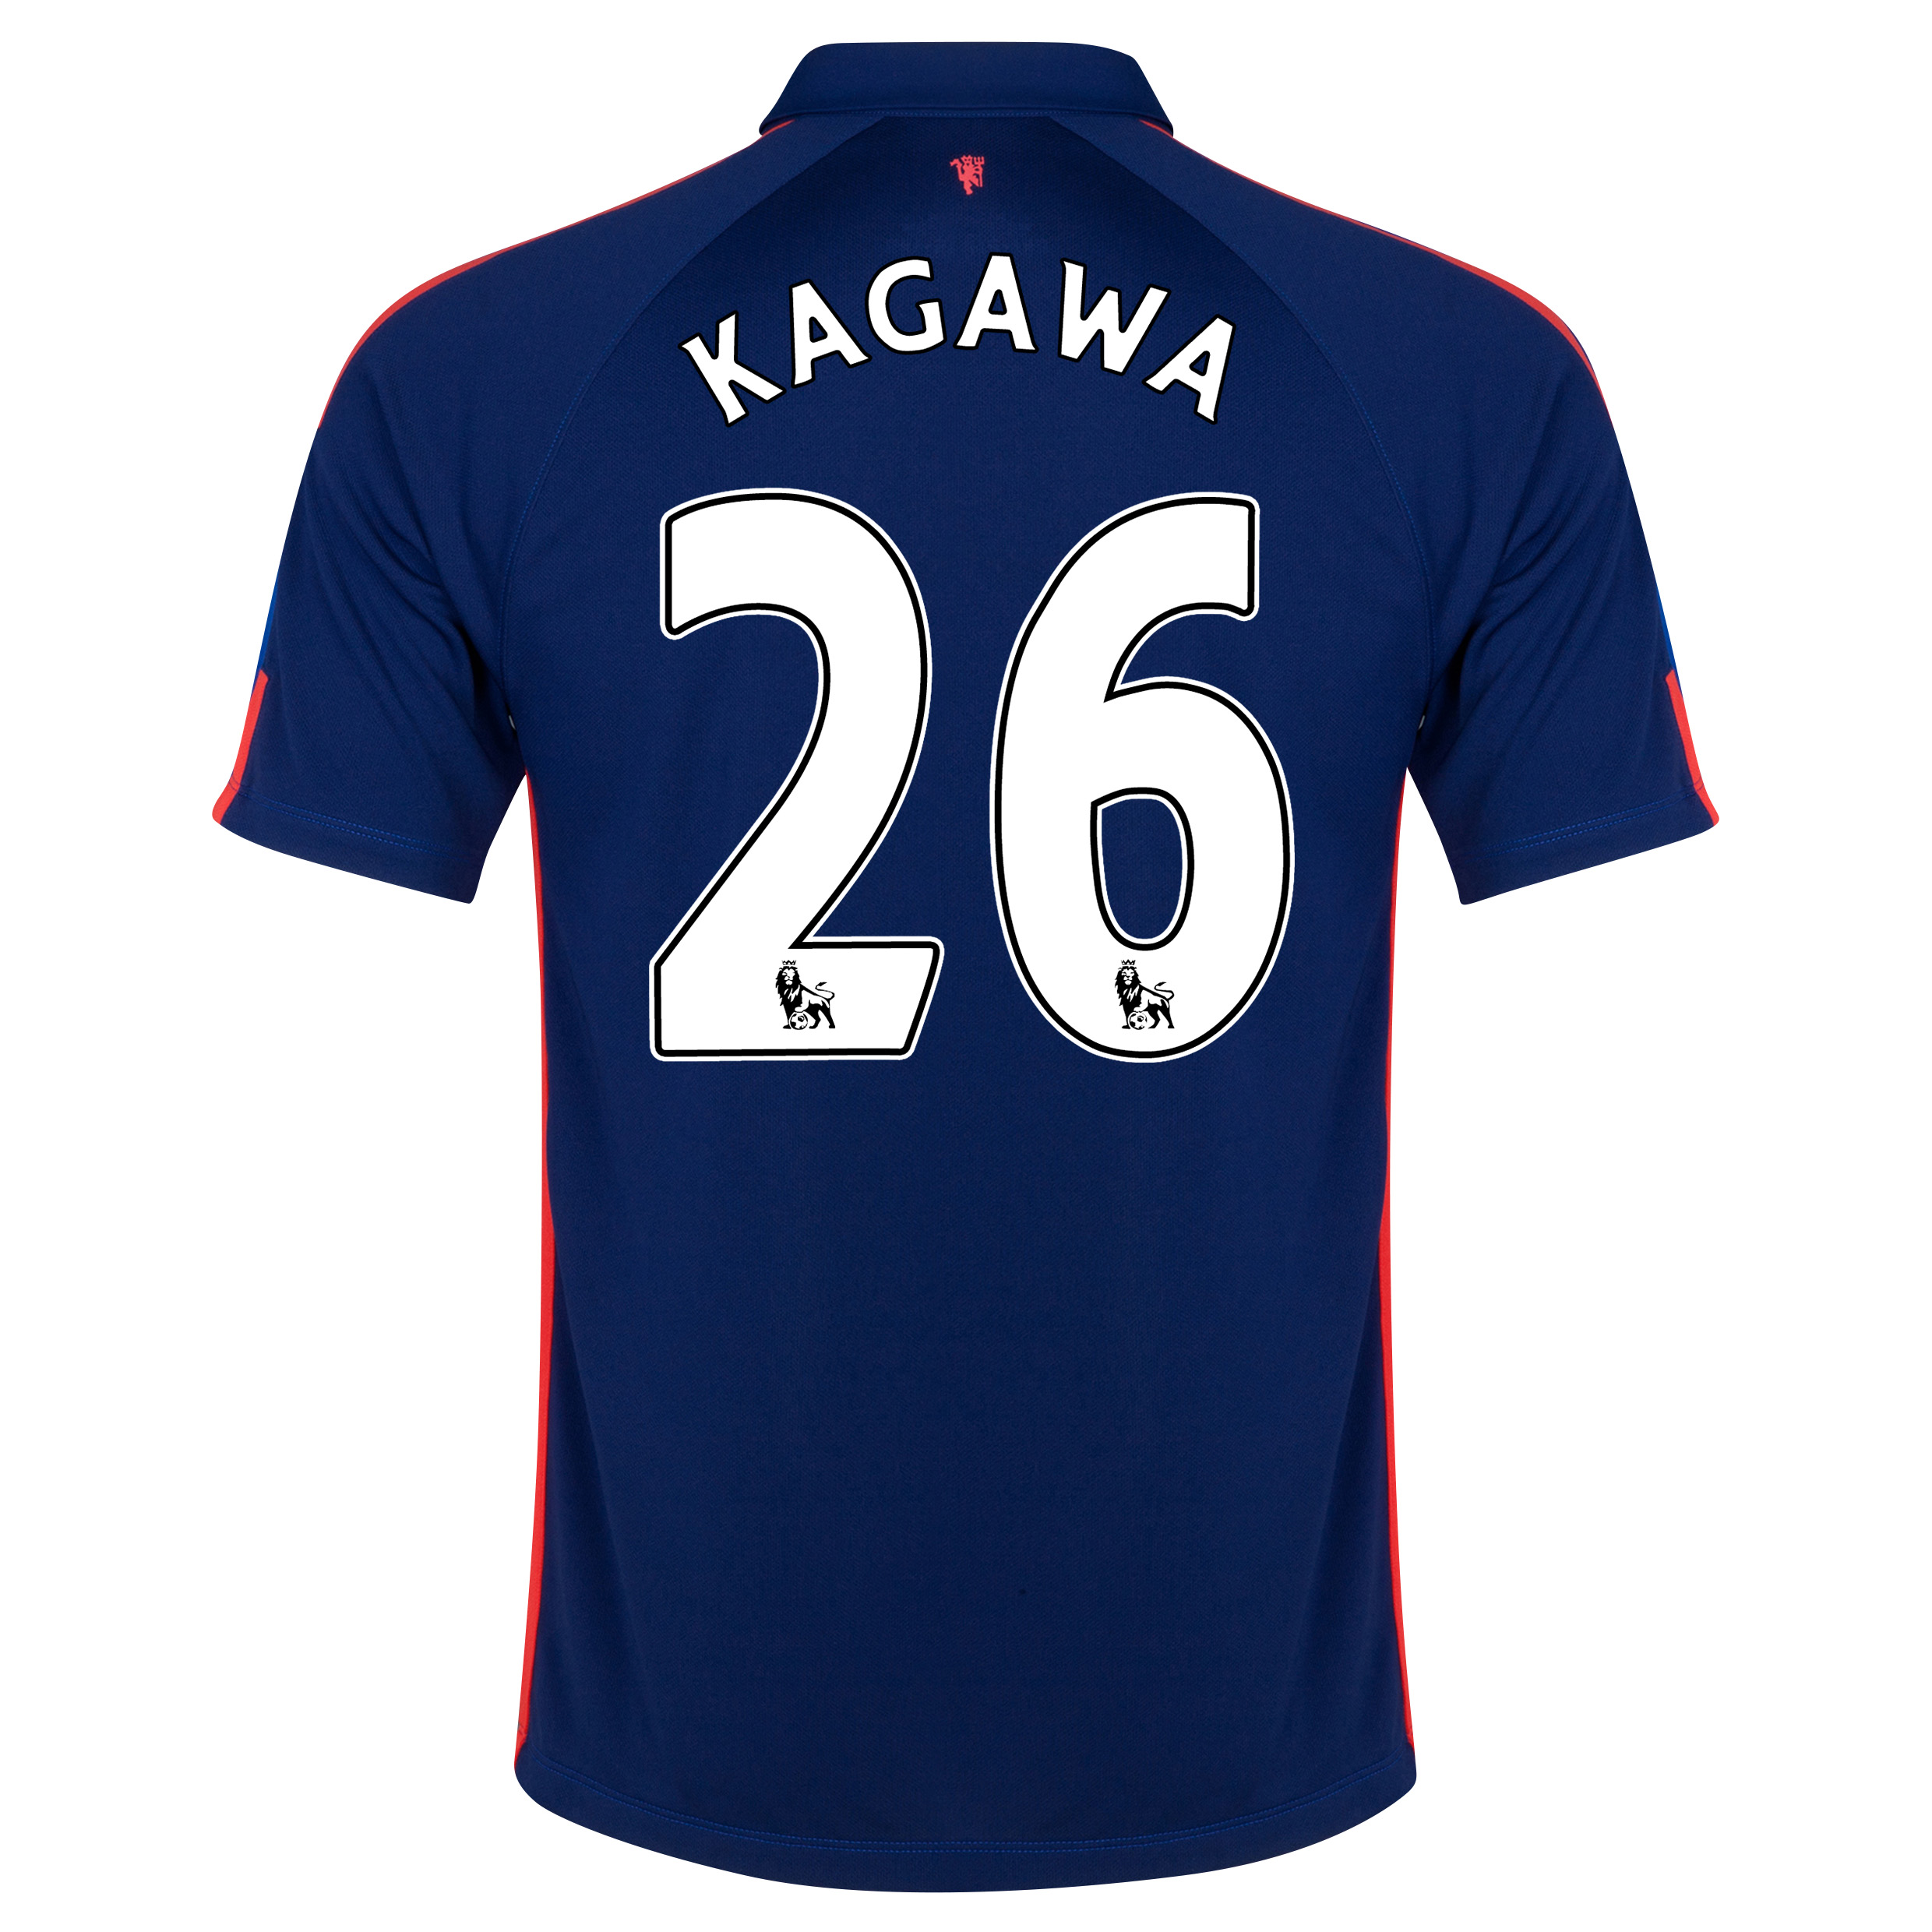 Manchester United Third Kit 2014/15 - Little Boys with Kagawa 26 printing